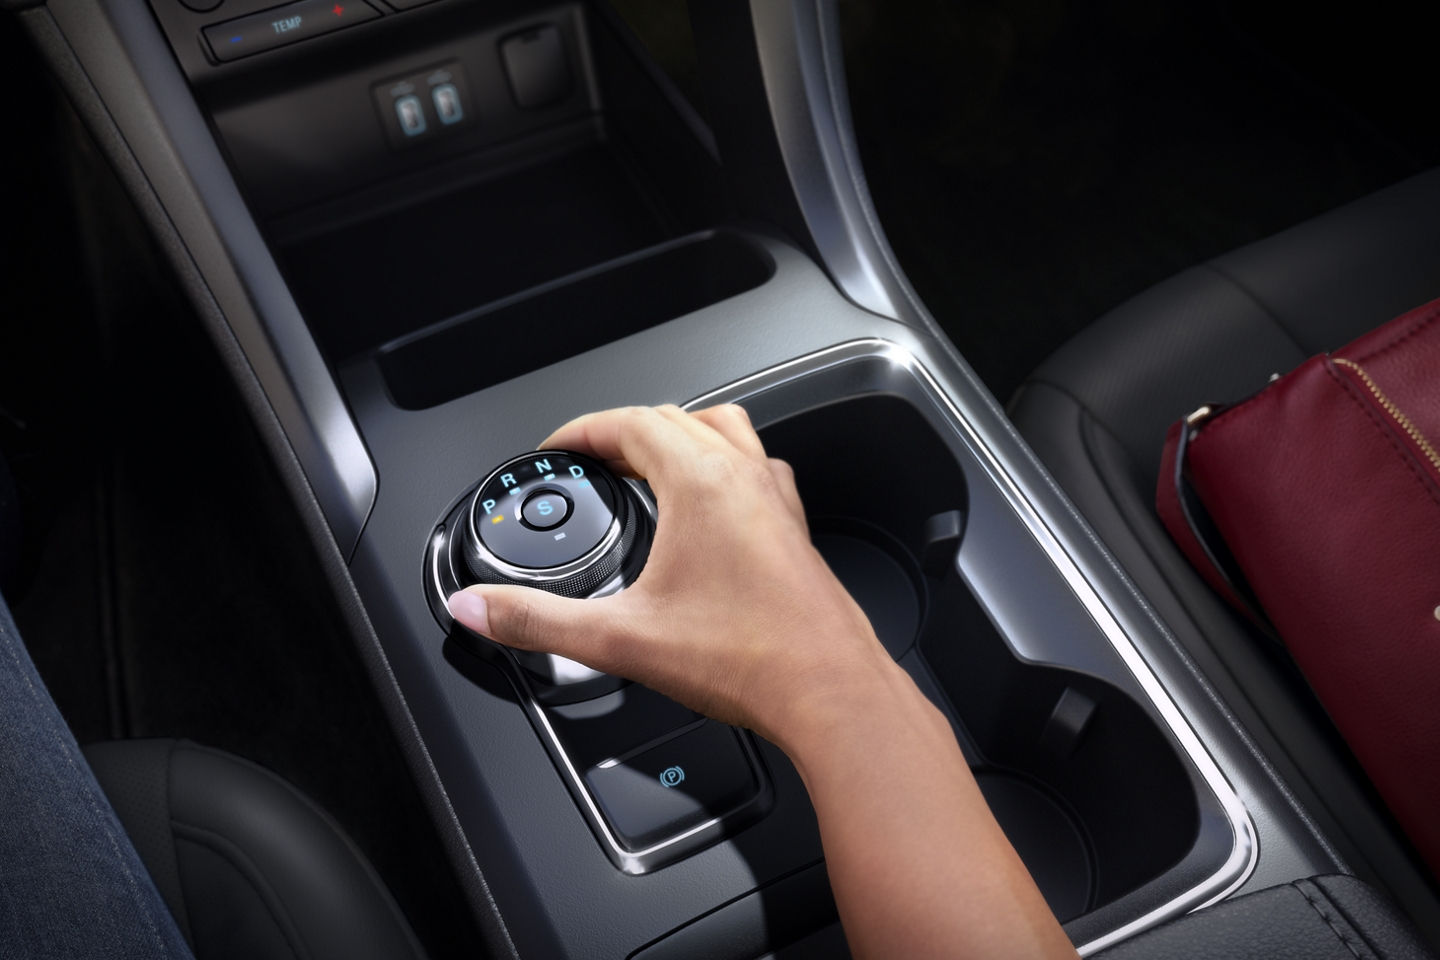 2020 Fusion Rotary Gear Shift Dial